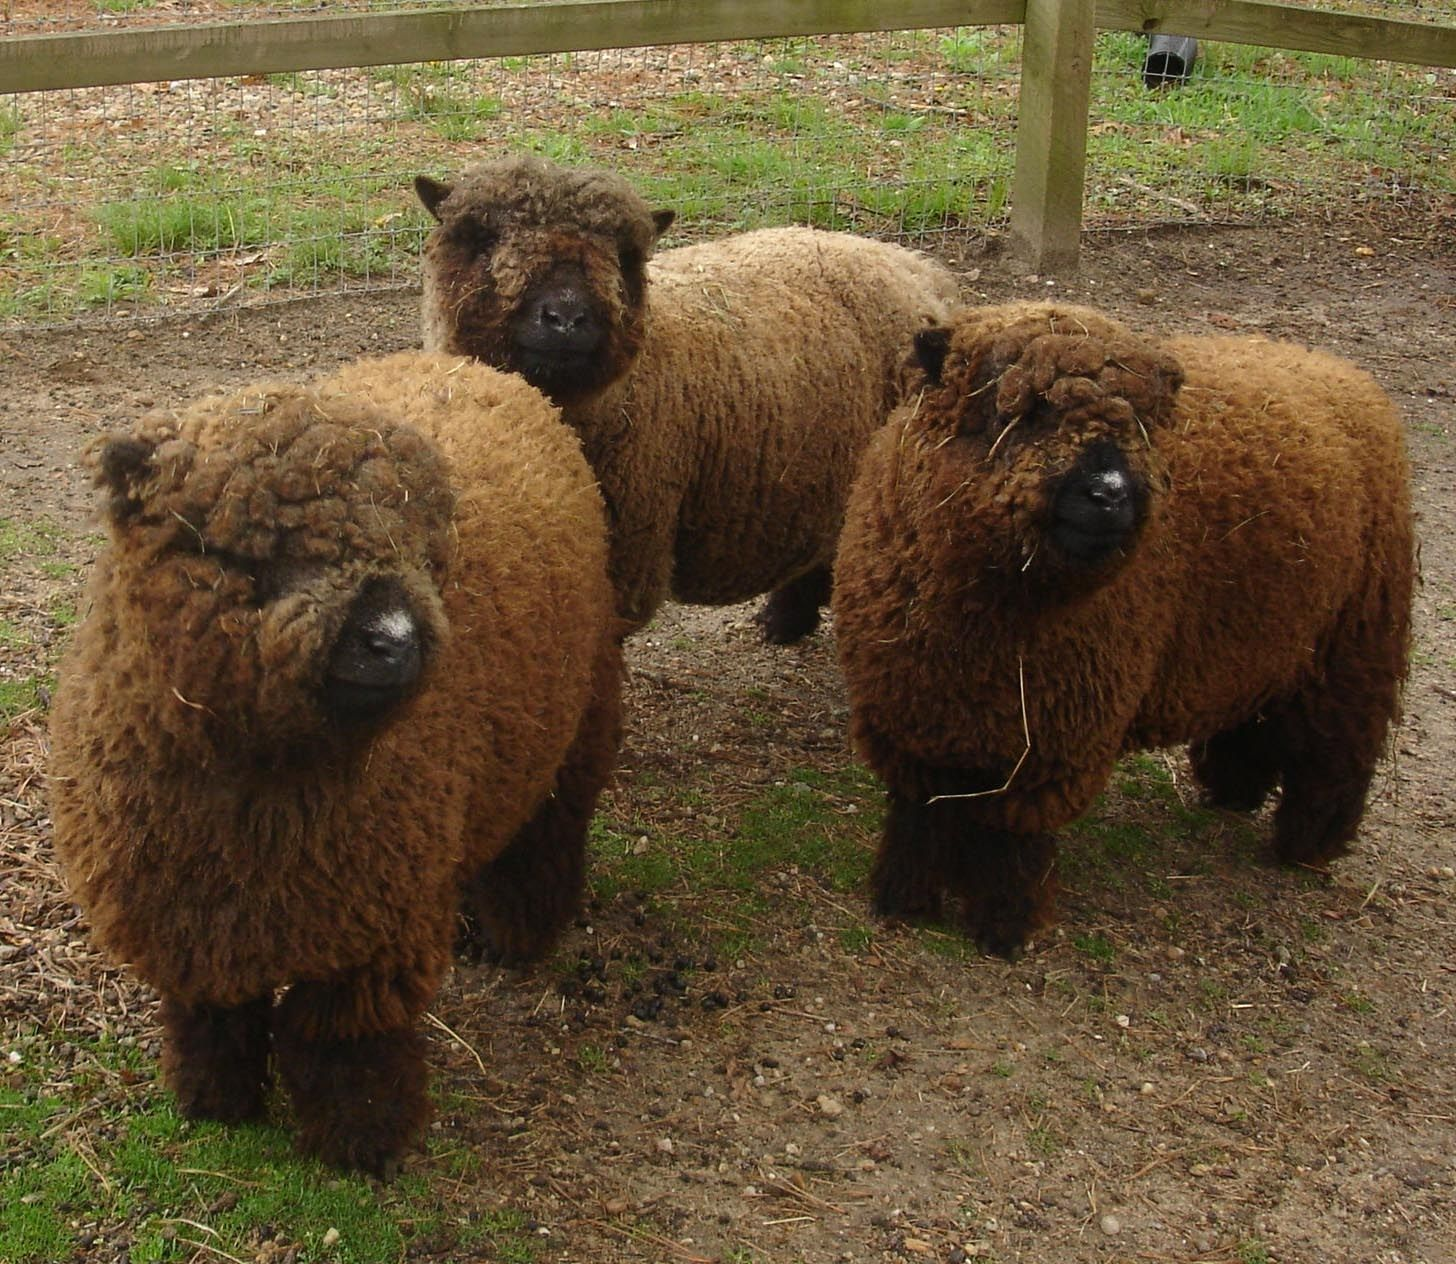 brown sheep - They look like fluffy stuffed animals ...